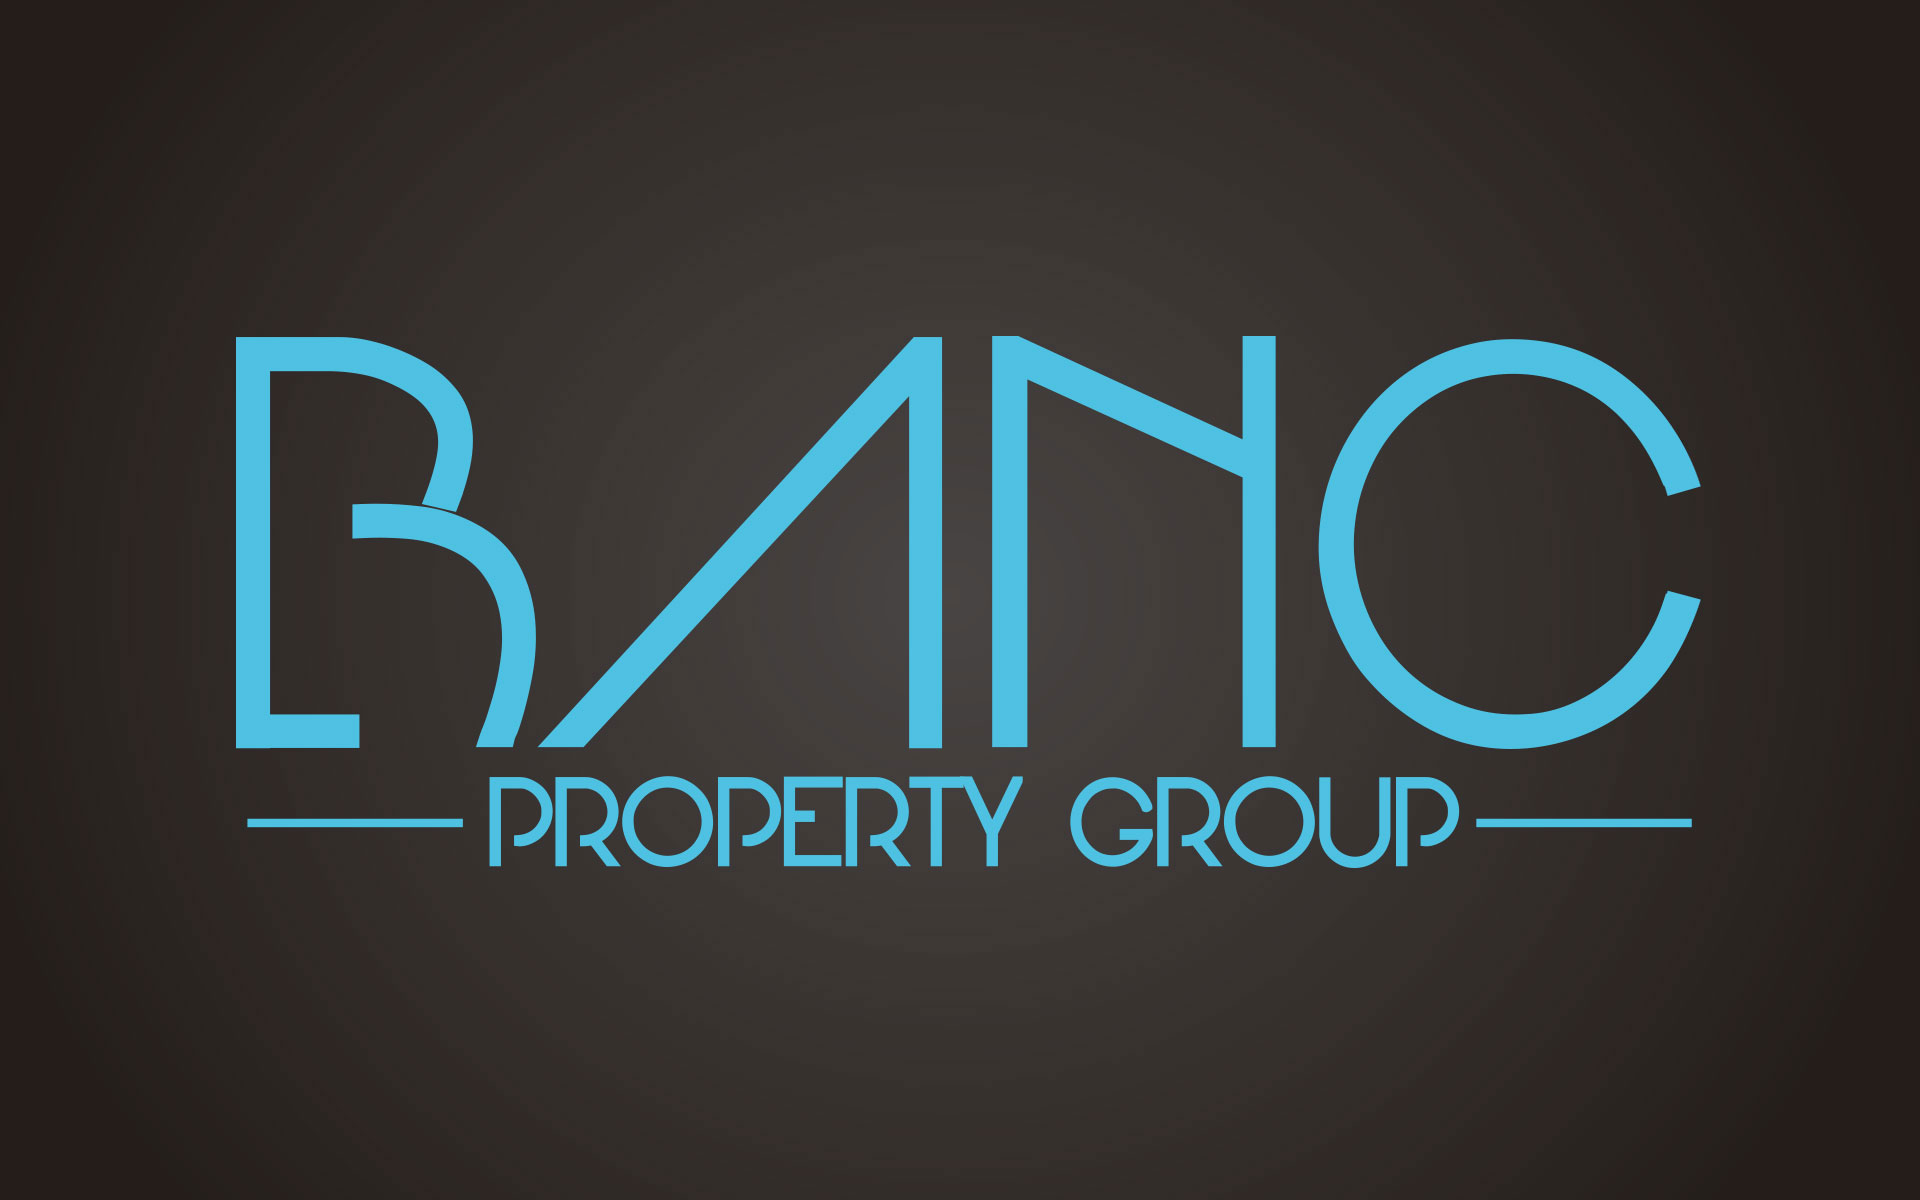 Cove Design Studio - Banc Property Group